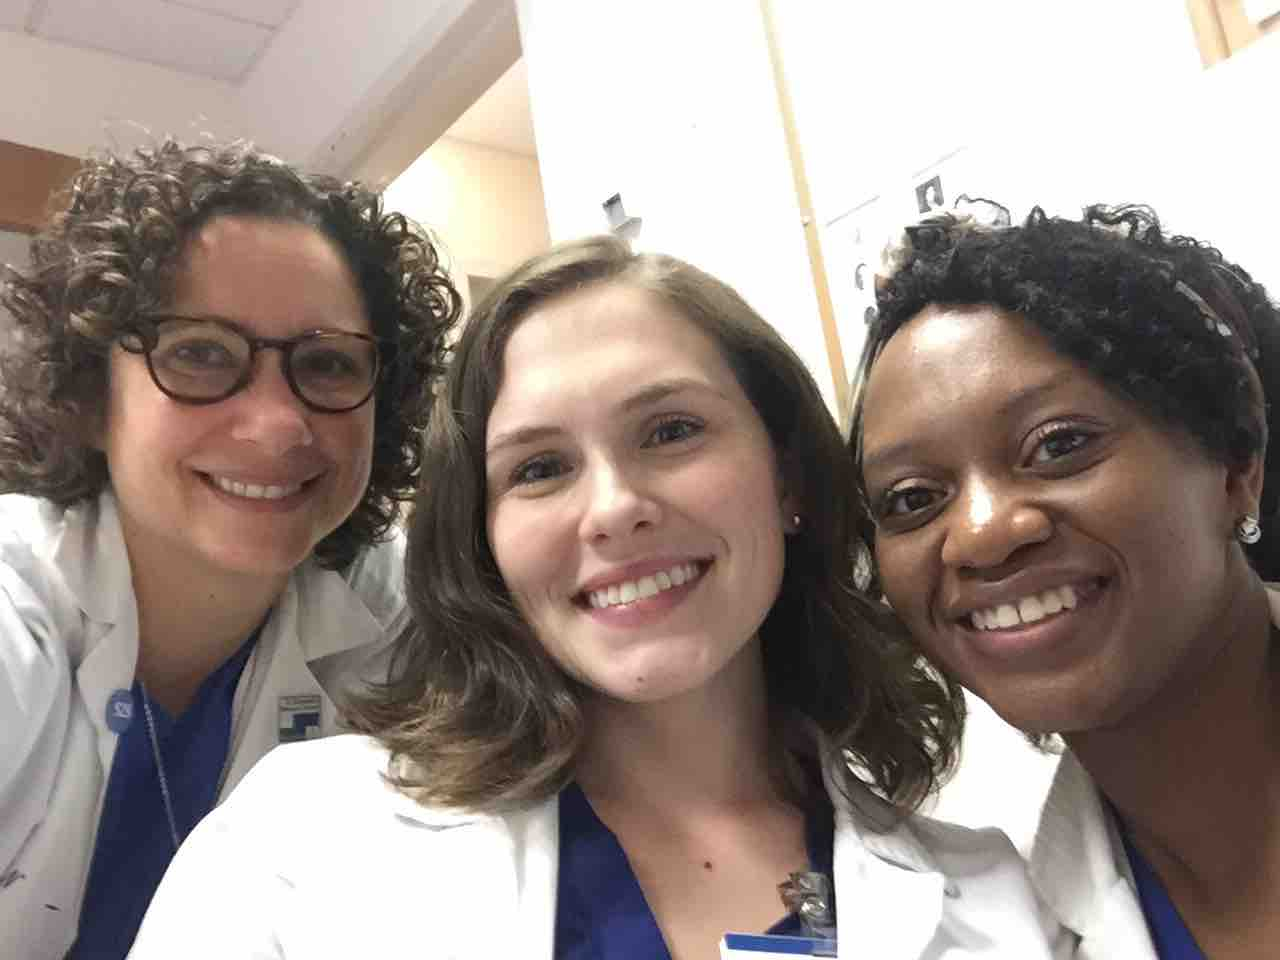 Kathryn Carr, CNM, (left) pictured with SNMs Nicole Mapes (center) and Cecile Sampson (right).